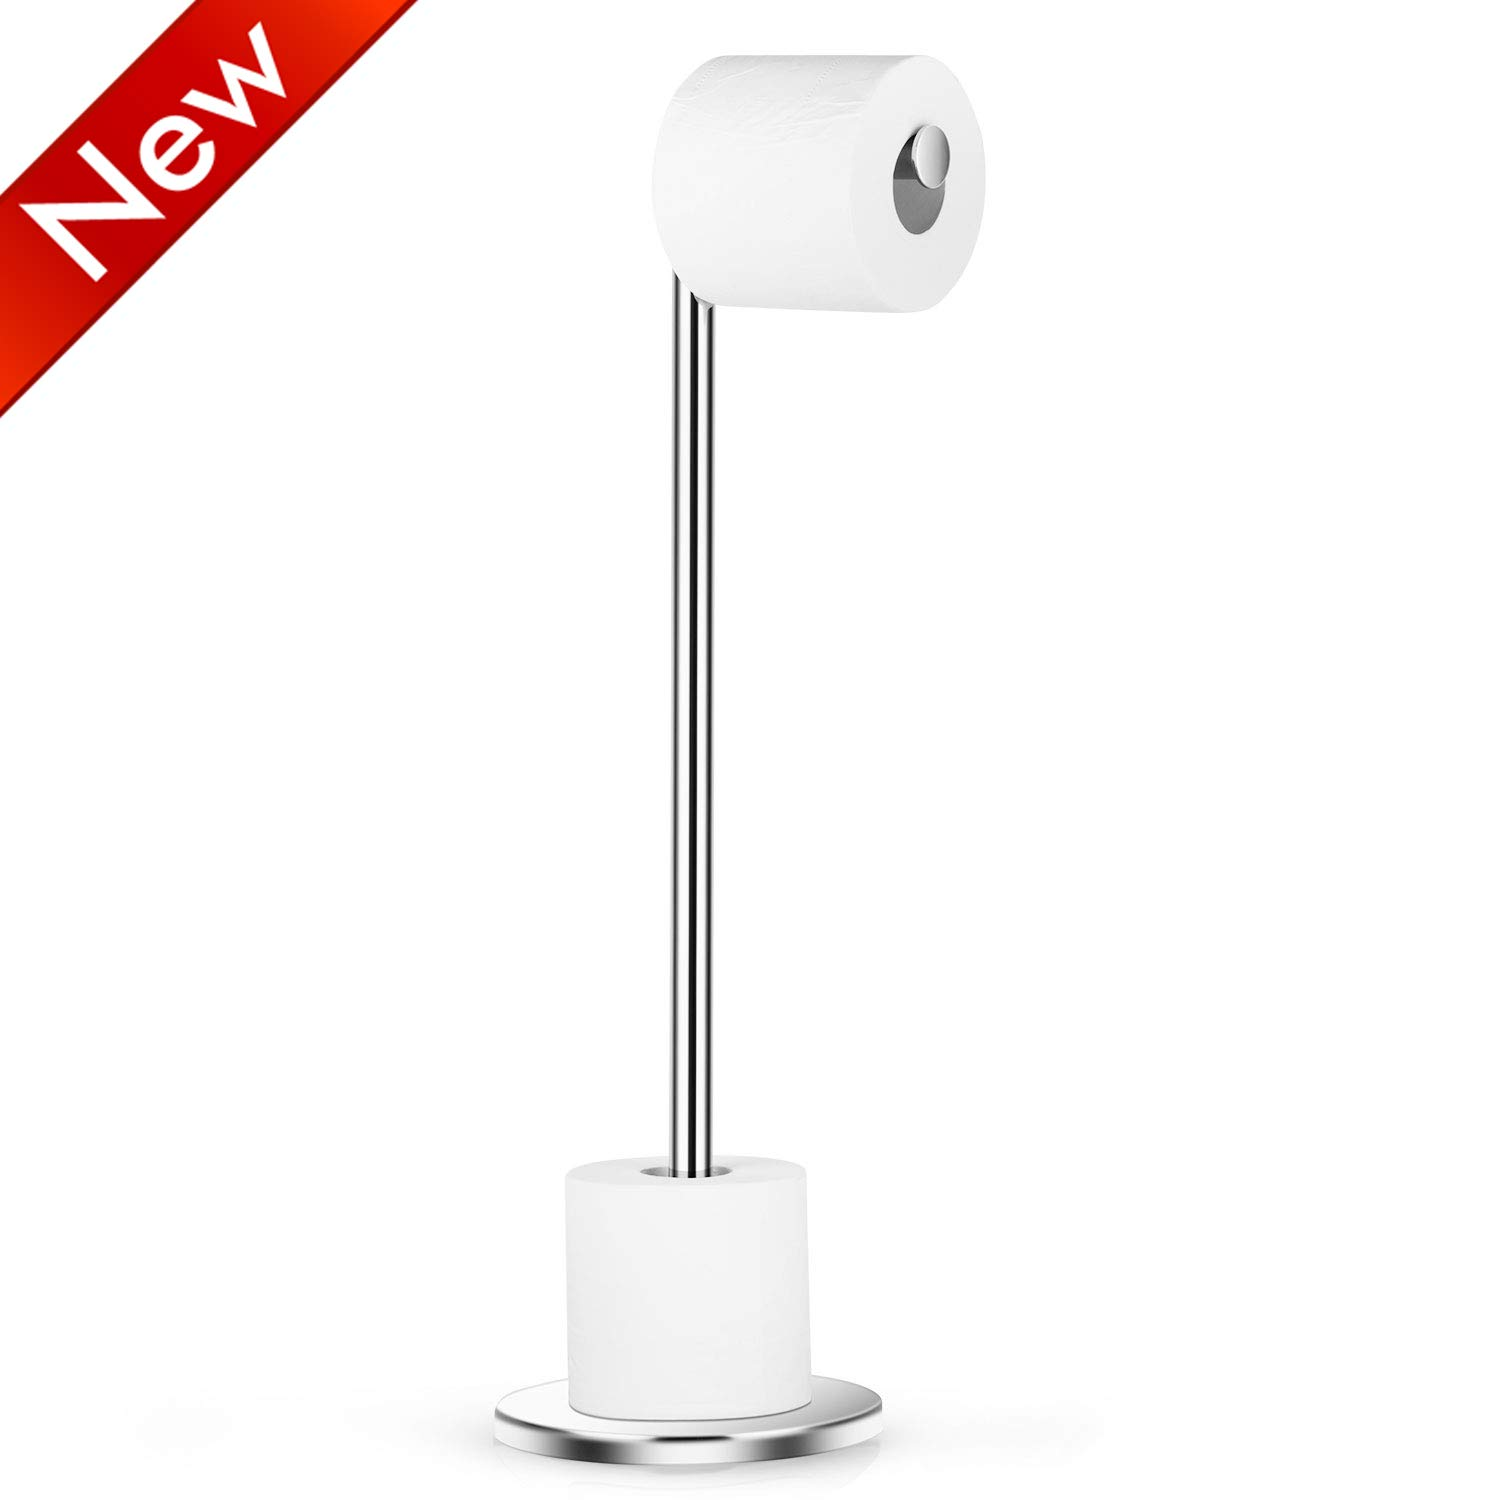 Naturous Stainless Steel Toilet Paper Holder, Free Standing Lavatory Pedestal Toilet Paper Stand with Reserve by Naturous